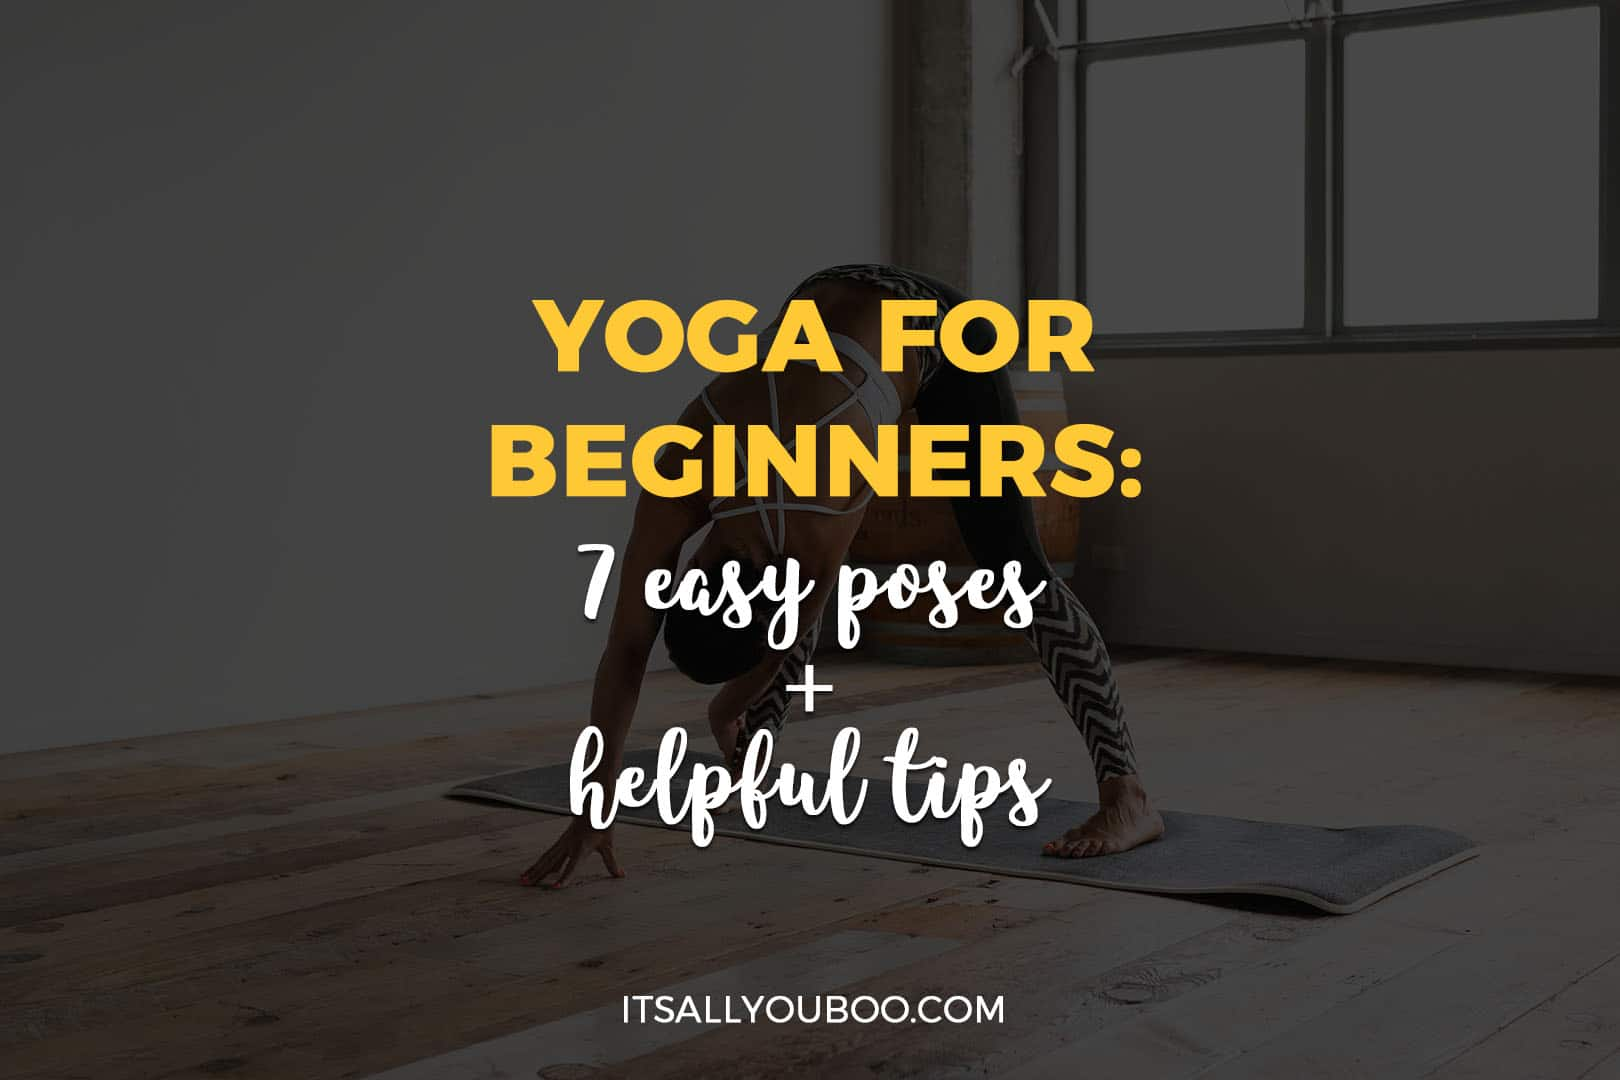 Yoga for Beginners: 7 Easy Poses and Helpful Tips